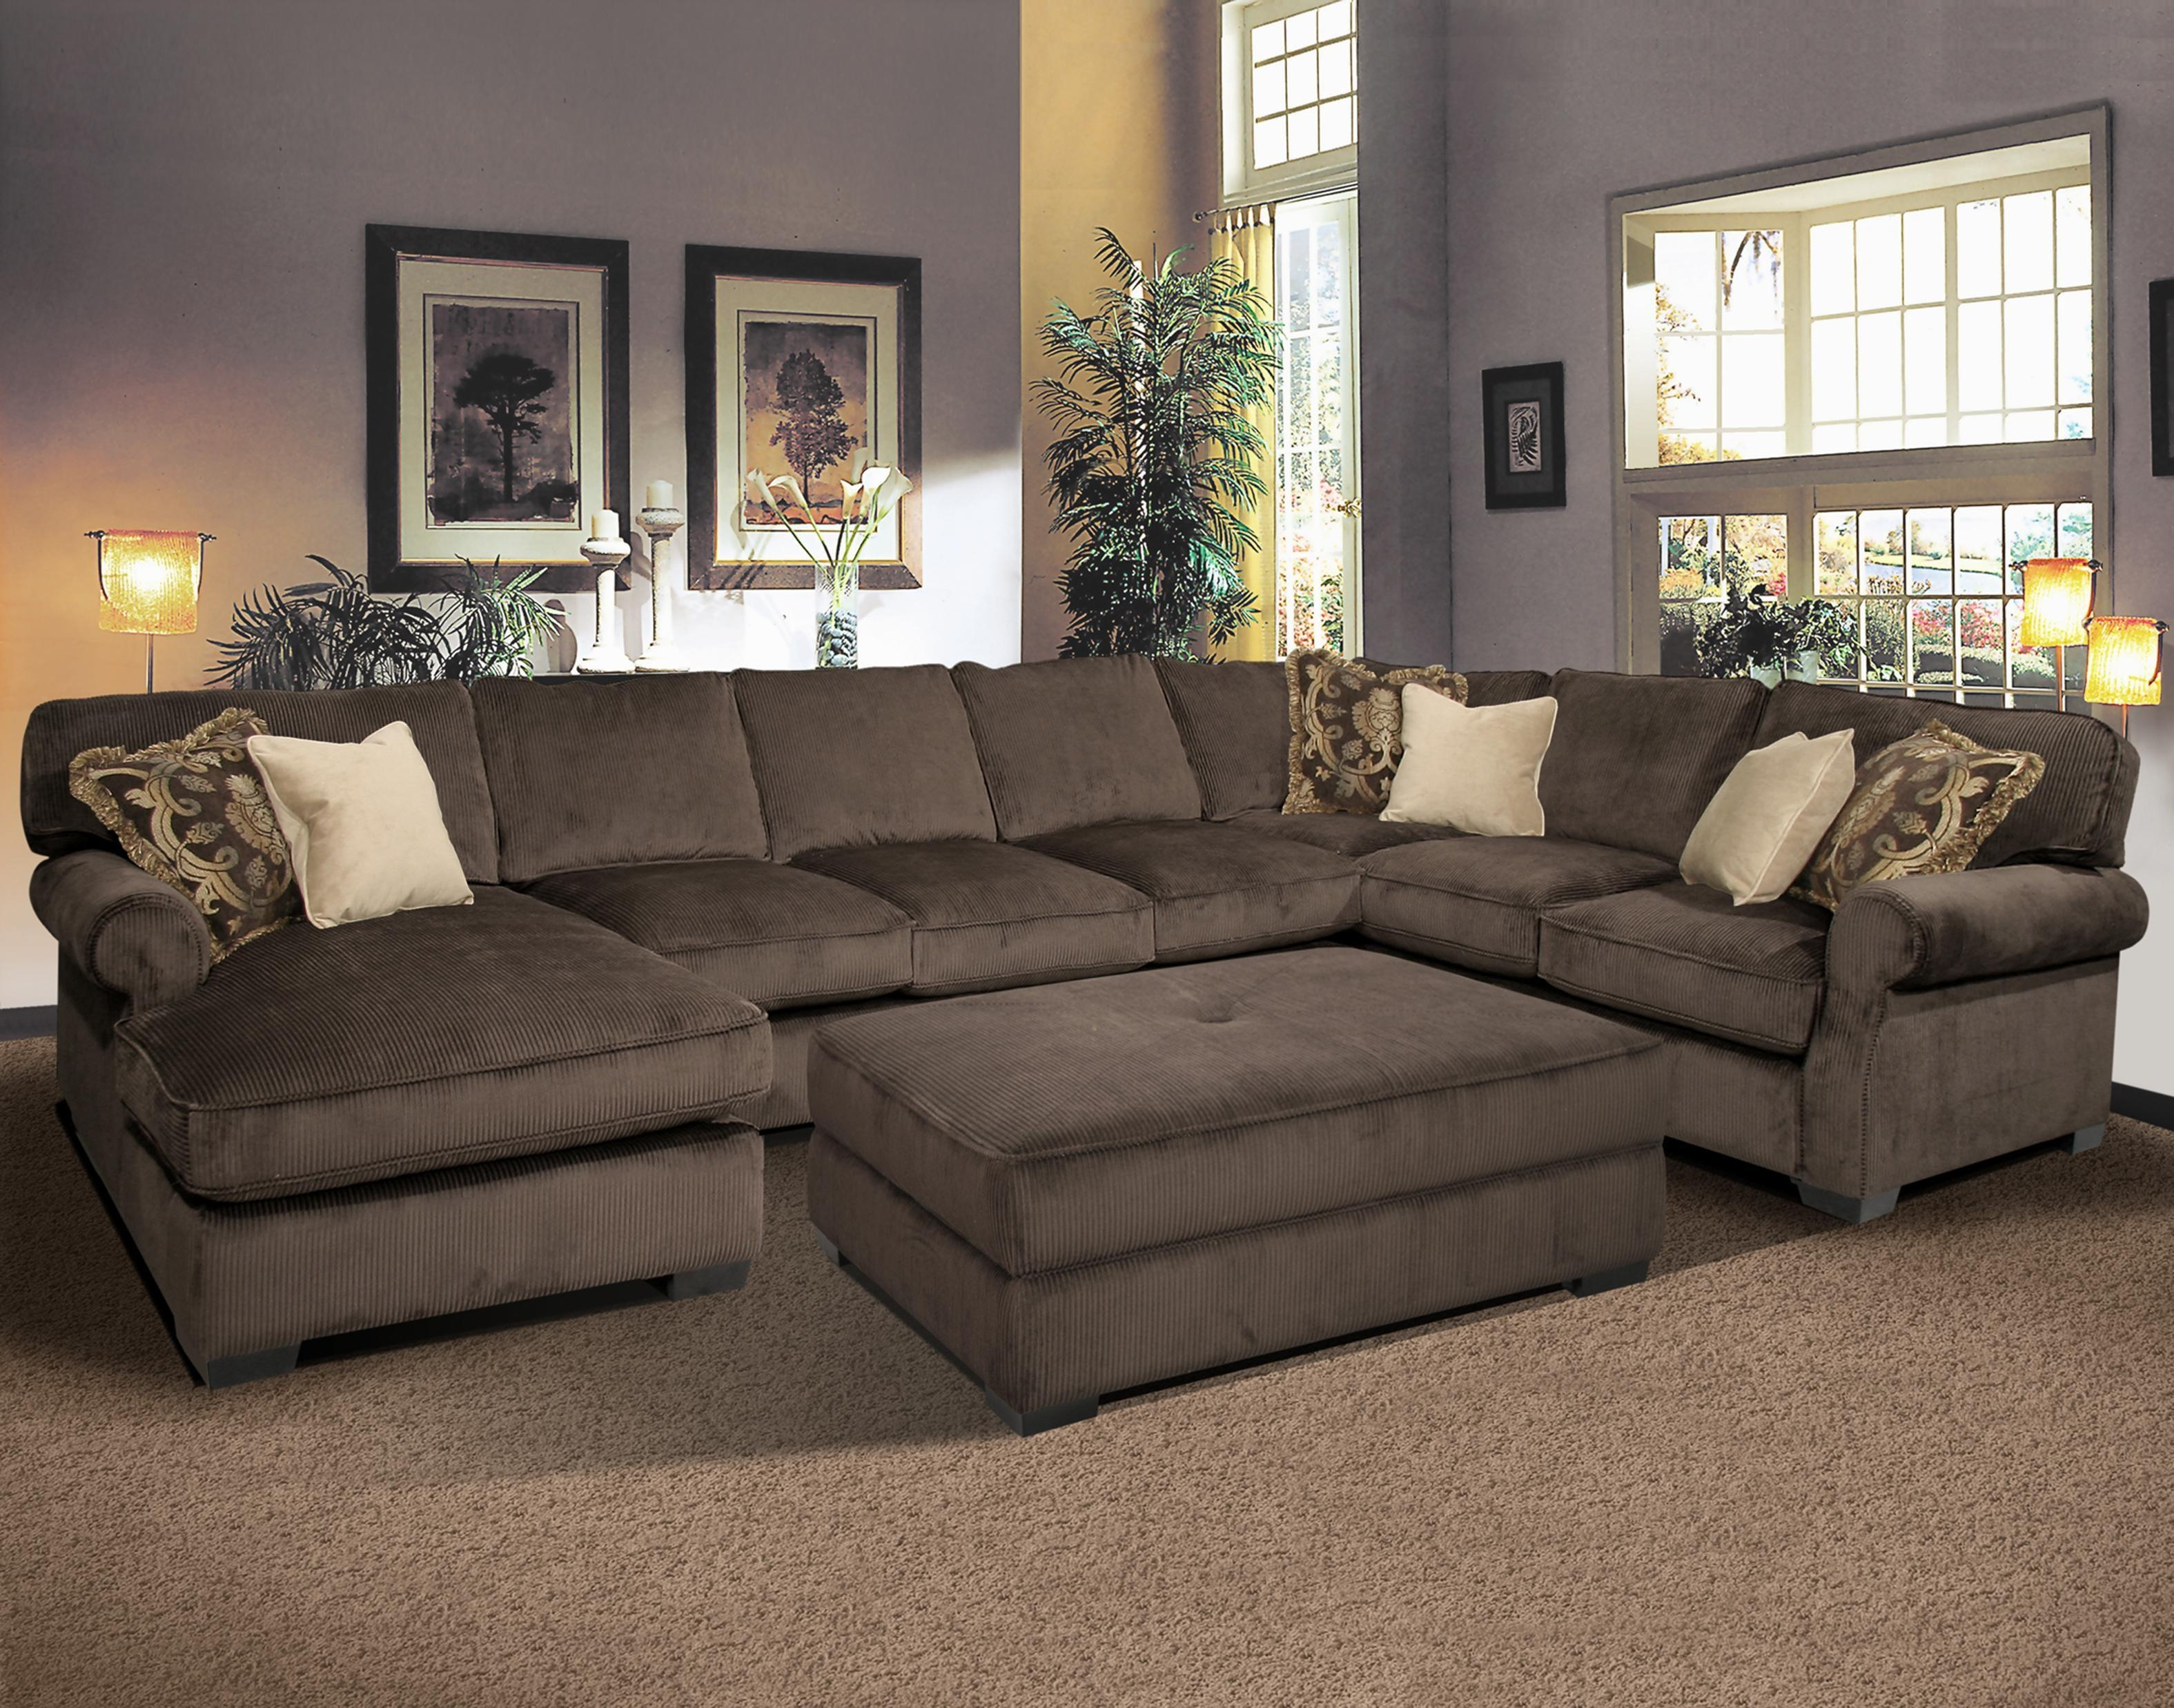 Queen Sofa Bed Sectional with Queen Sofa Sleeper Sectional Microfiber